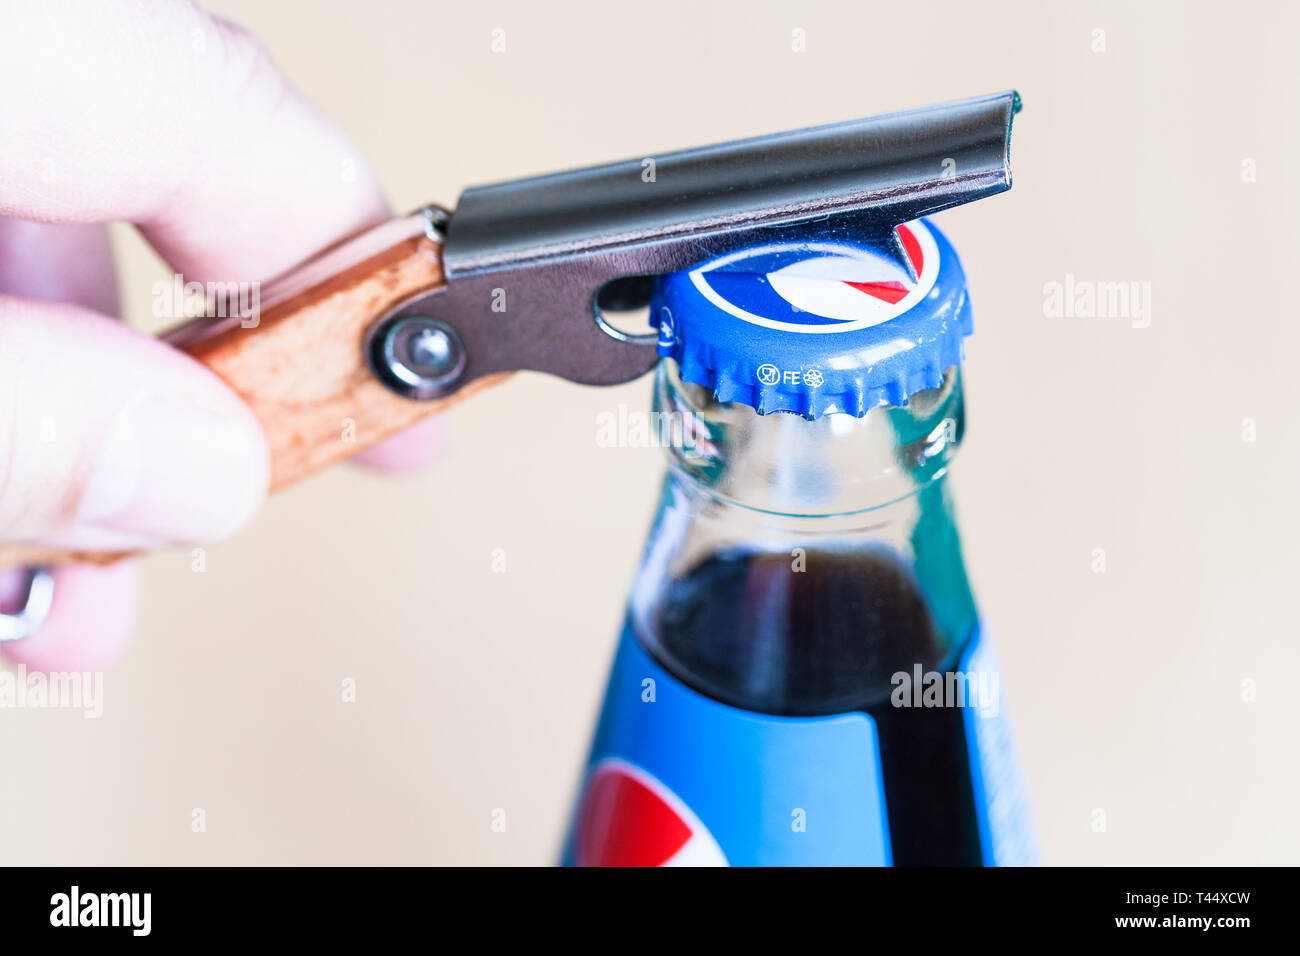 MOSCOW, RUSSIA - APRIL 4, 2019: opening a cap of Pepsi glass bottle